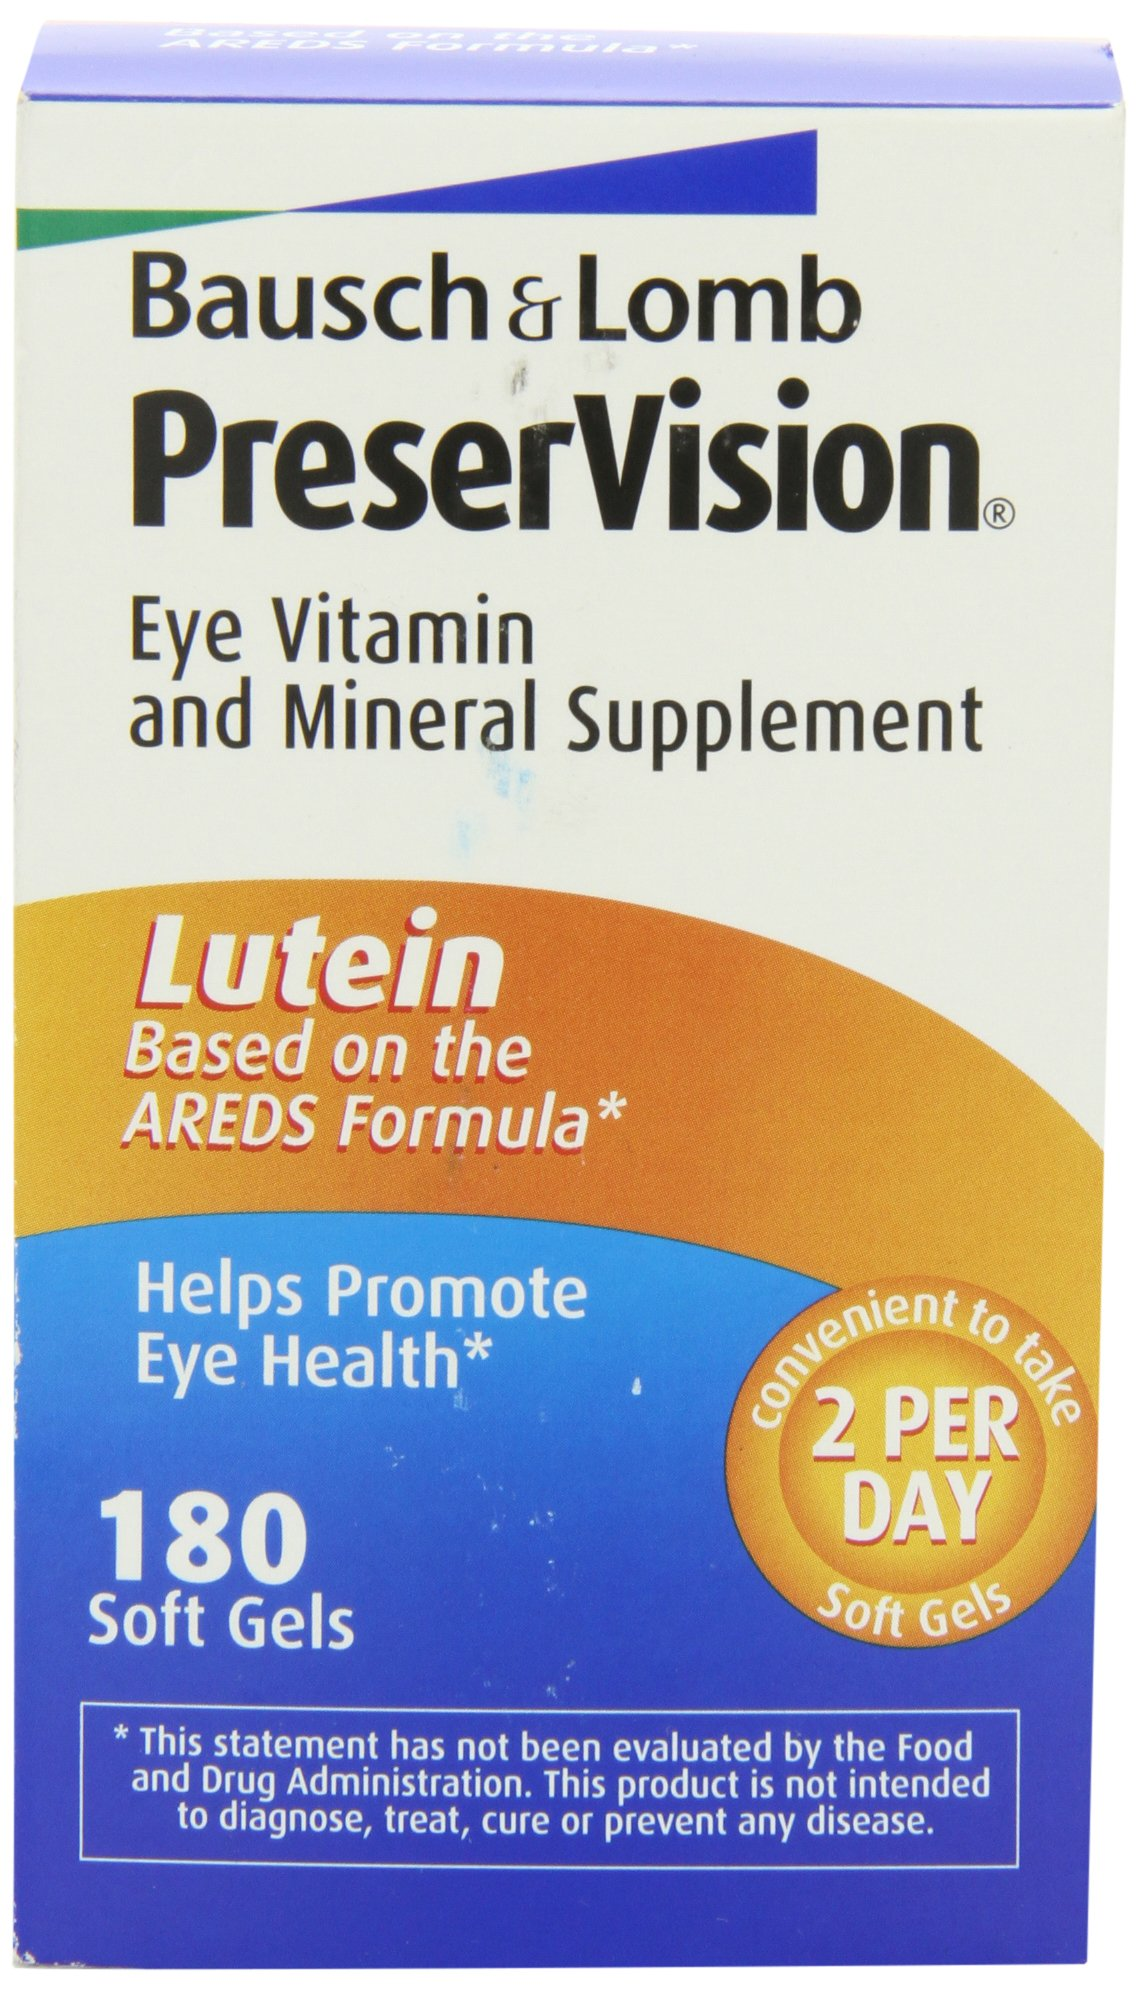 Bausch & Lomb Preservision Eye Vitamin and Mineral Supplement with Lutein - 180 Softgels by Bausch & Lomb